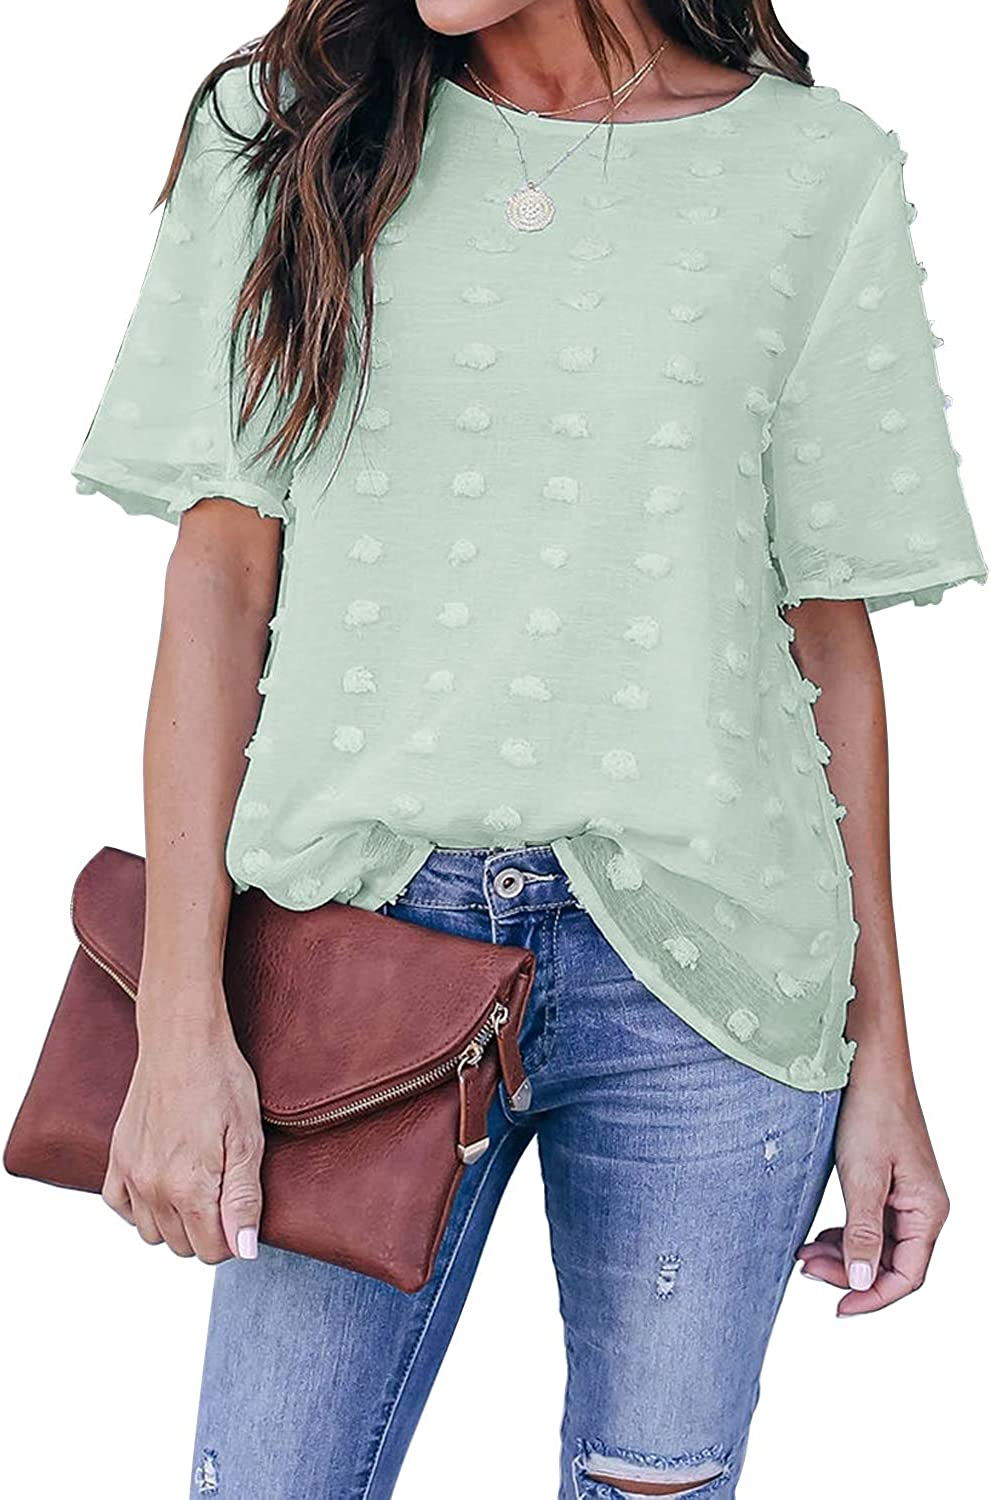 Blooming Jelly Womens Chiffon Blouse Summer Casual Round Neck Short Sleeve Pom Pom Shirts Tops